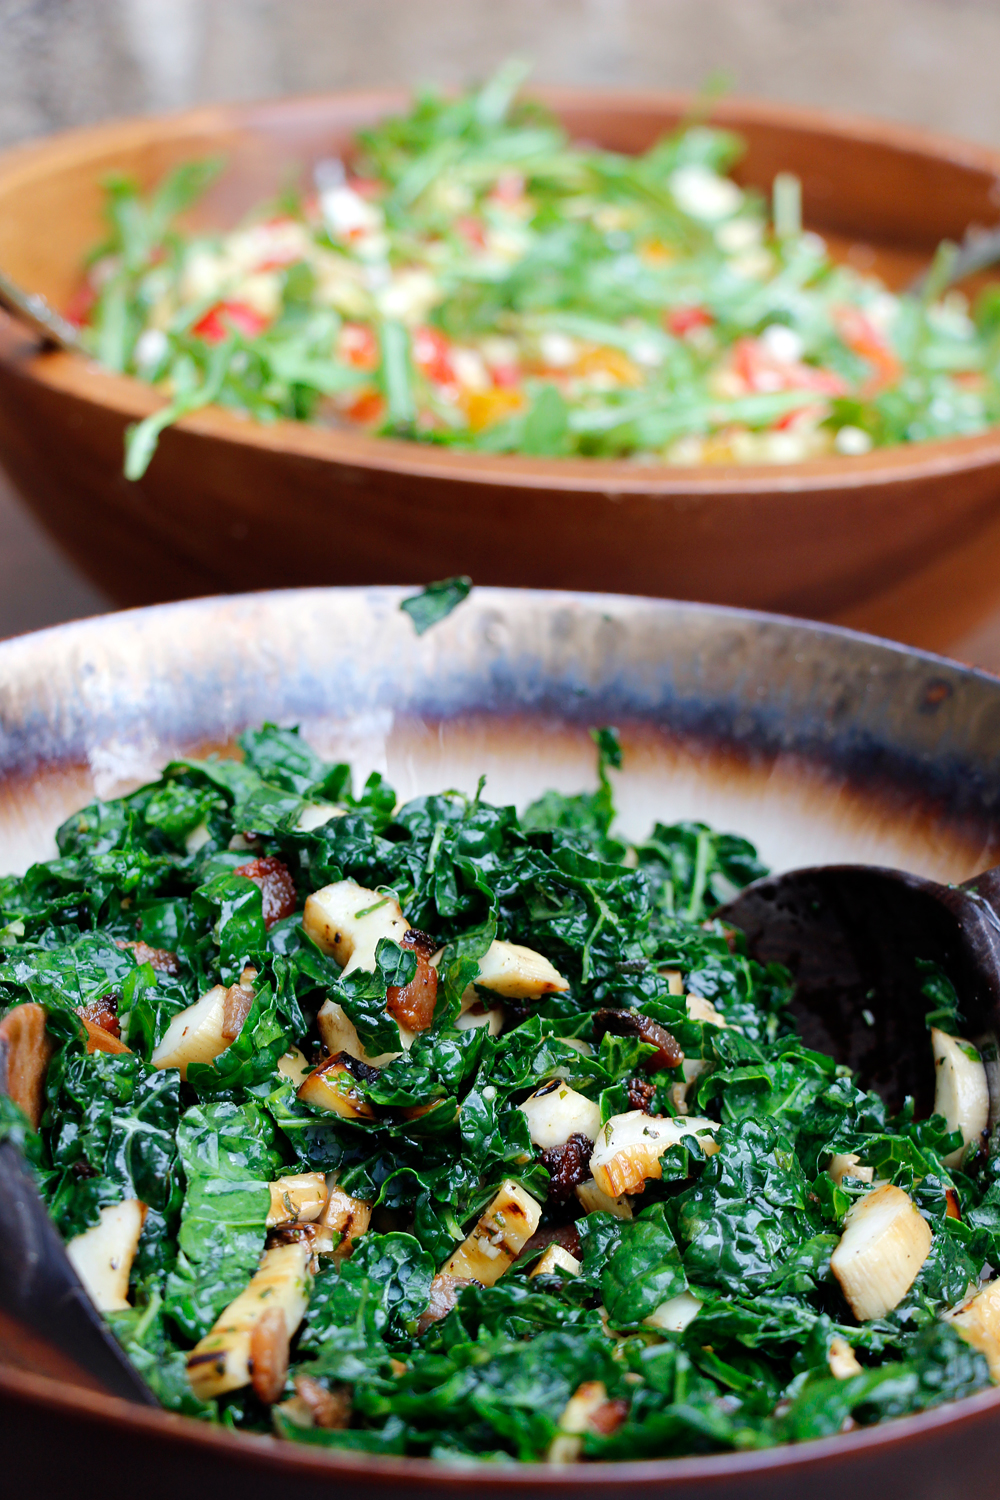 Grilled King Trumpet Mushroom, Kale, and Bacon Salad with Lemon-Herb Vinaigrette. Photo: Wendy Goodfriend